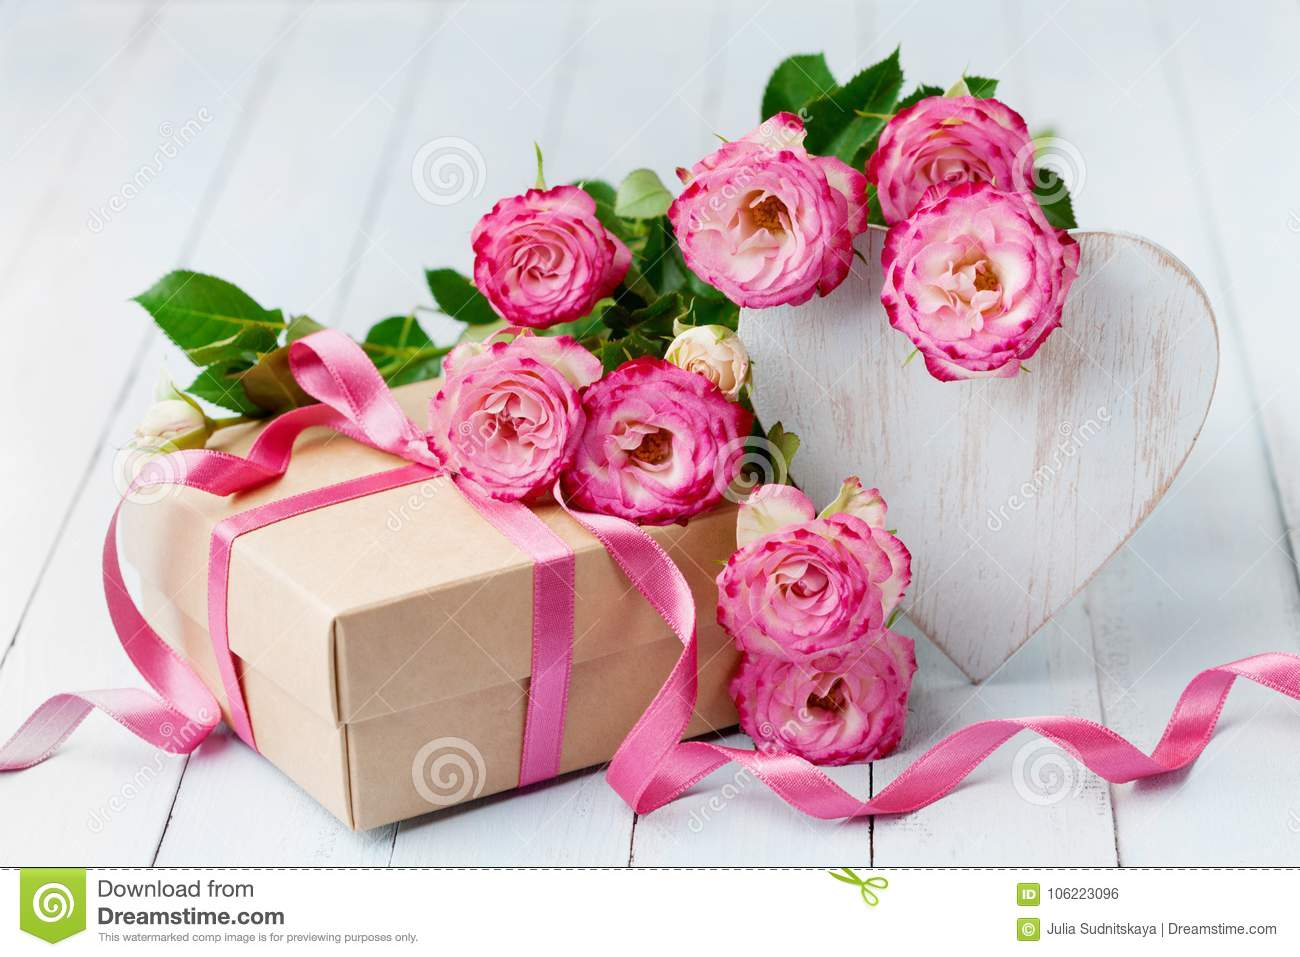 Rose Flowers Wooden Heart And Gift Box On Blue Rustic Table